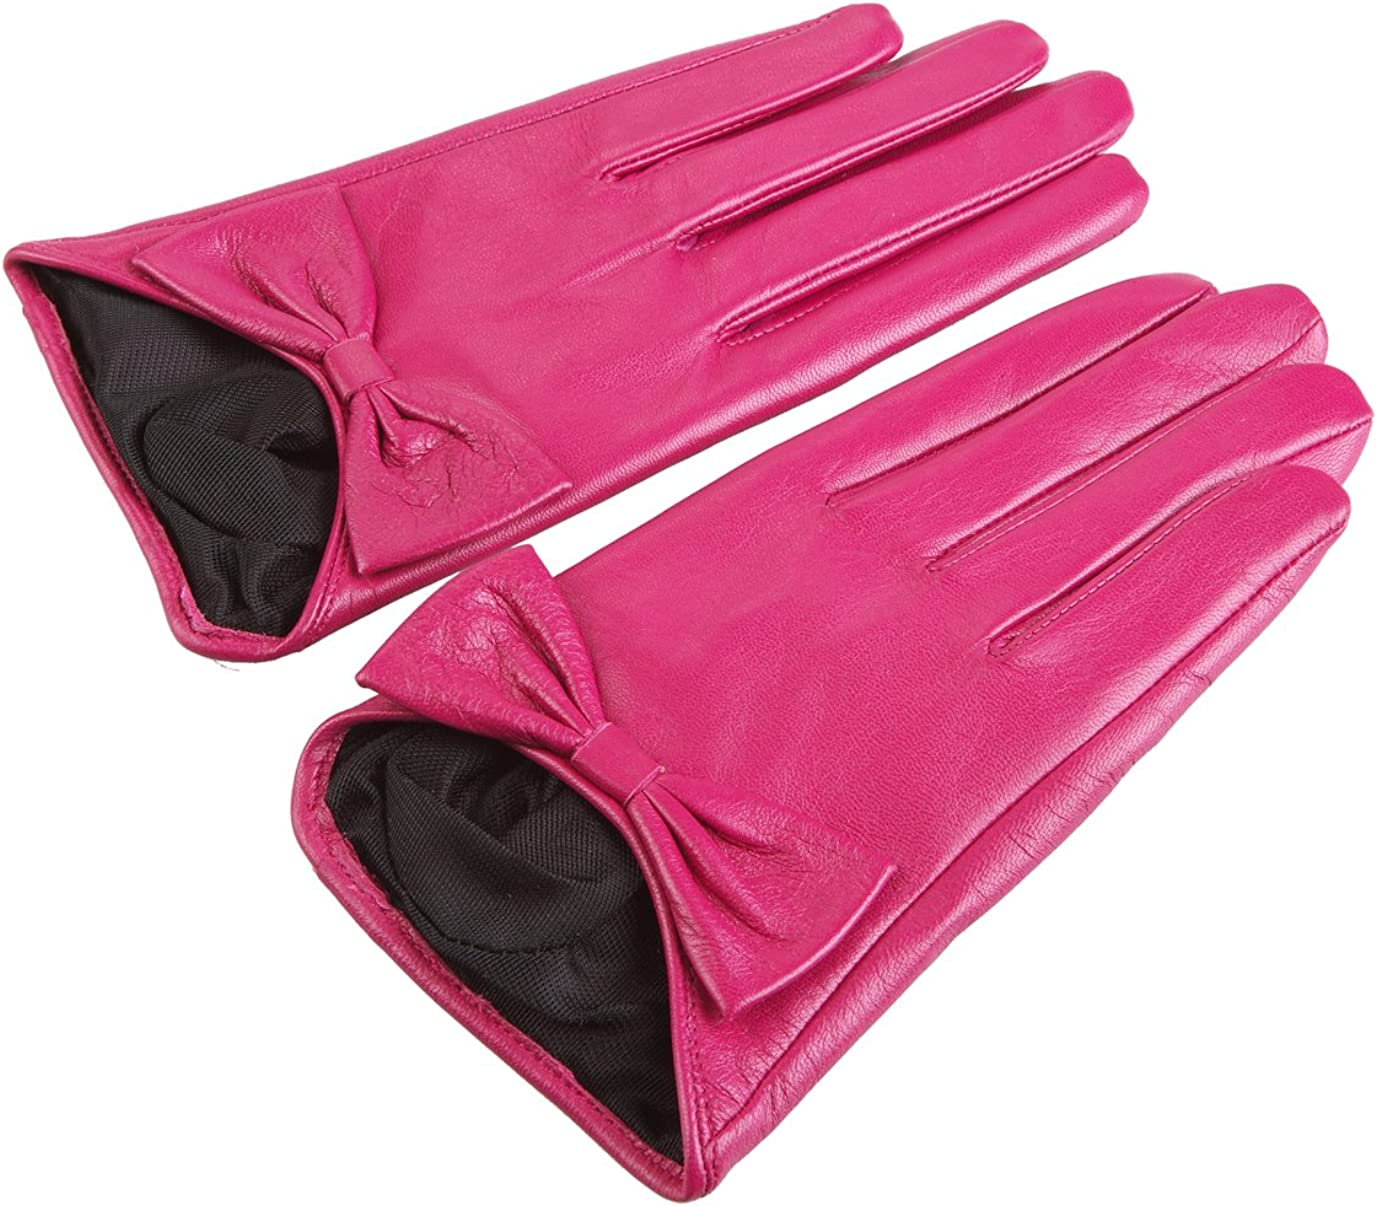 Chickle Women's Half Plam Bowknot Driving Lambskin leather Gloves